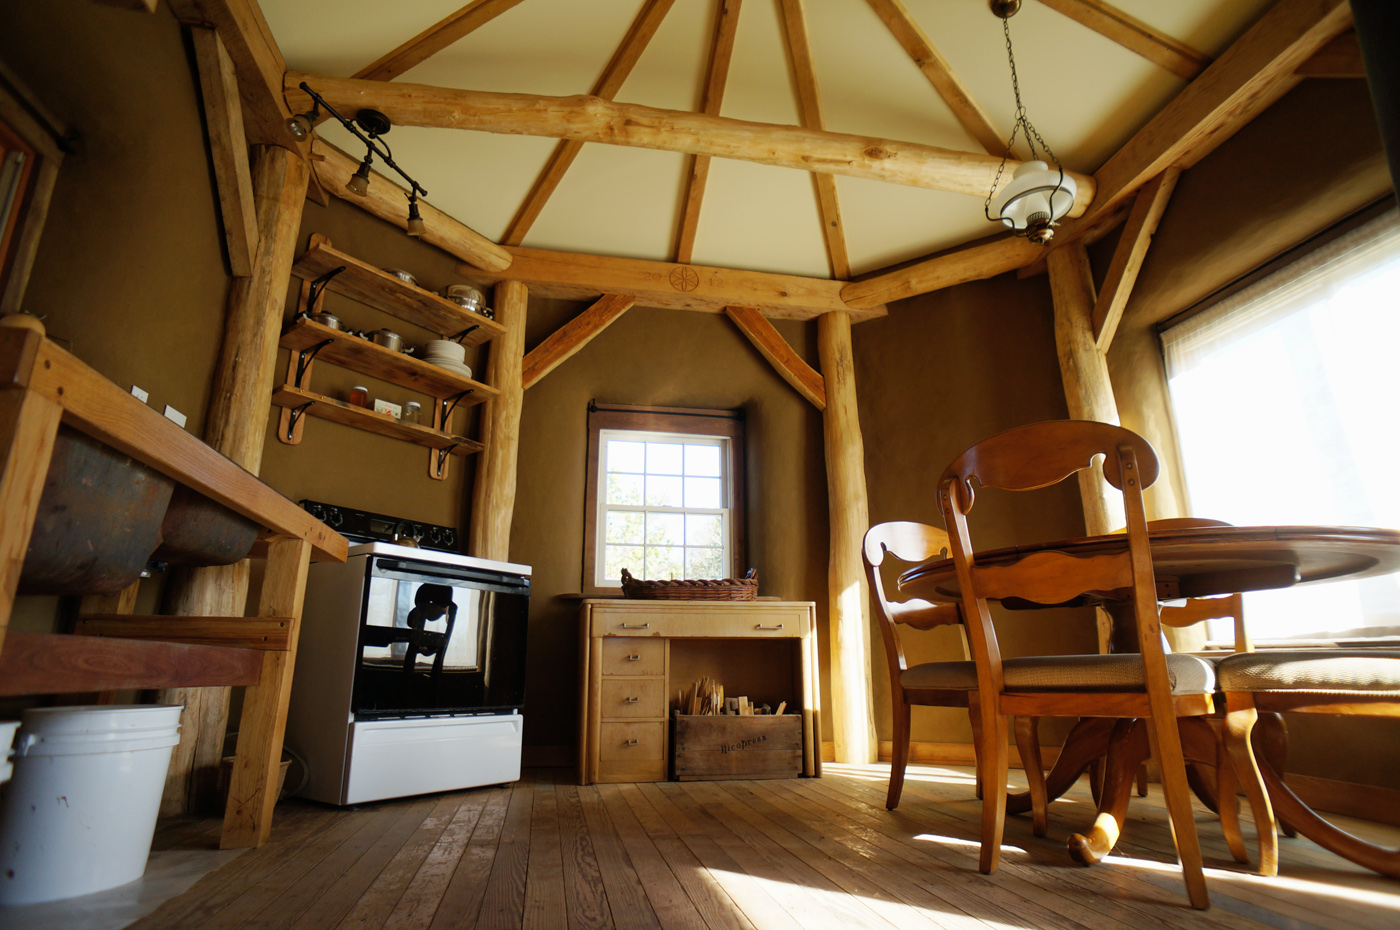 Timber frame straw bale house for sale natural home Home interior pictures for sale